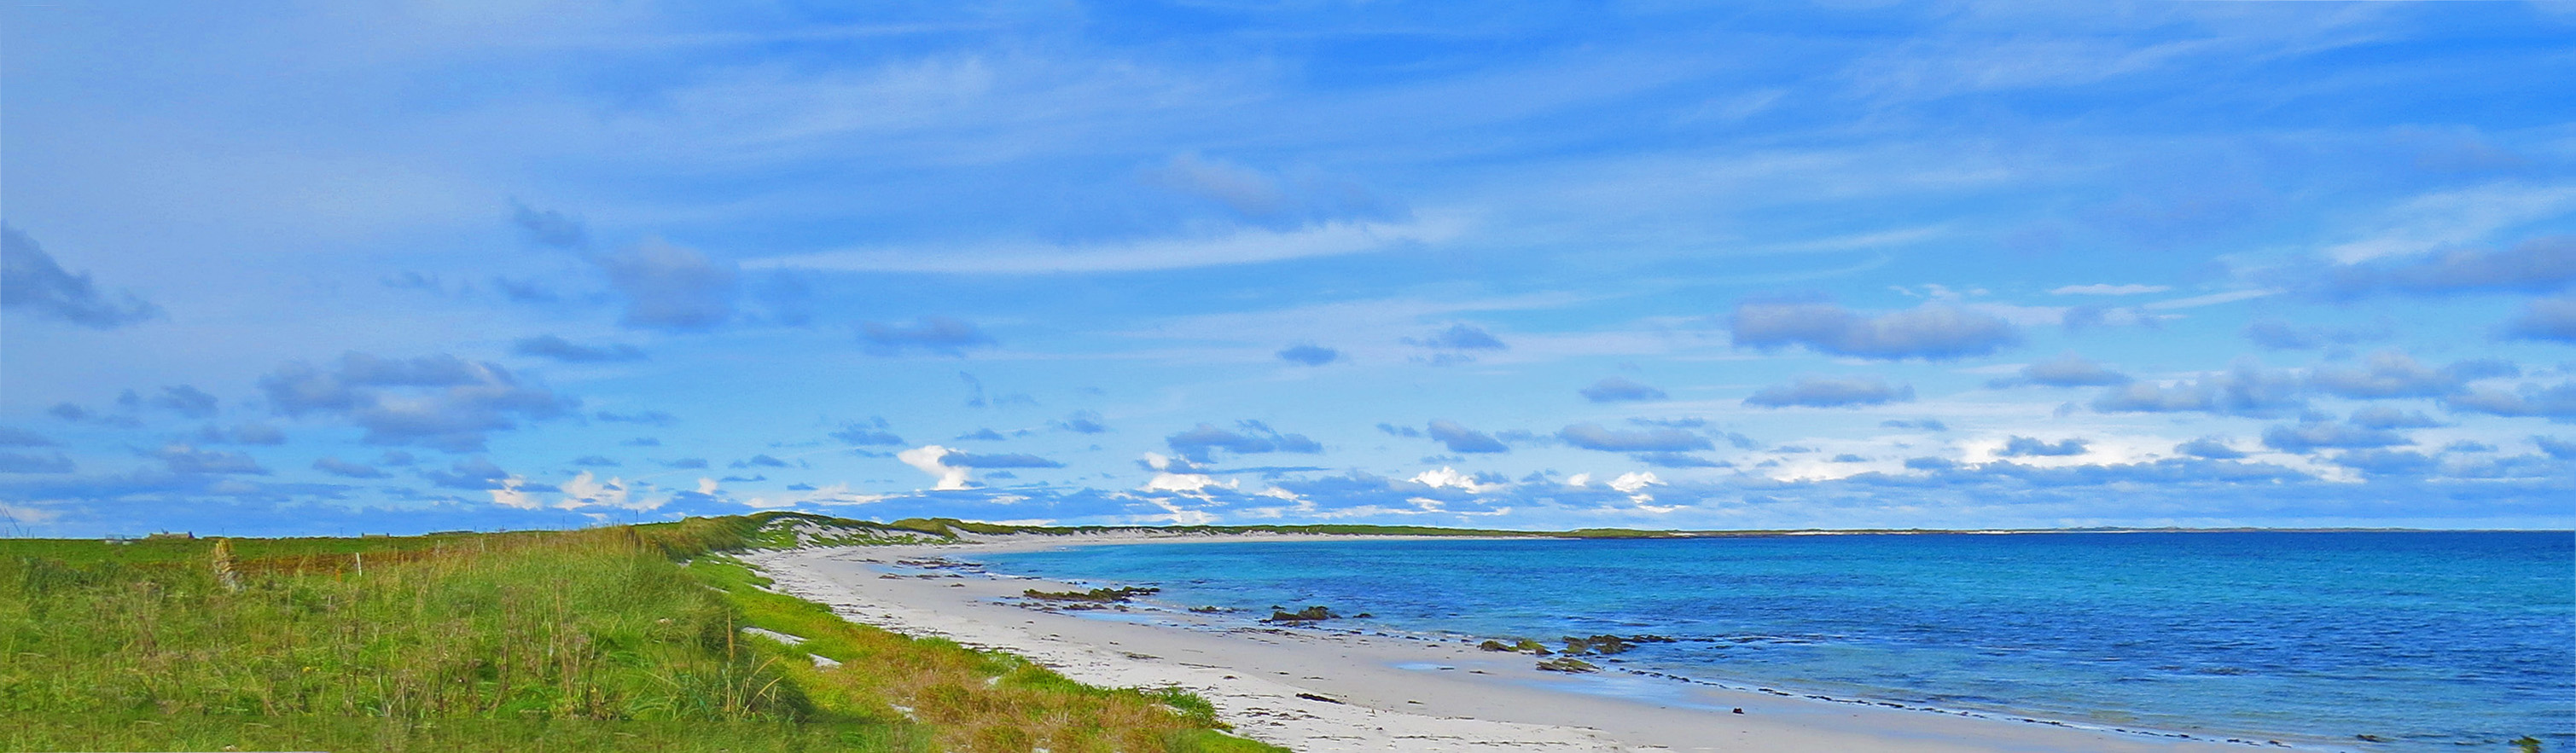 cata sands, sanday